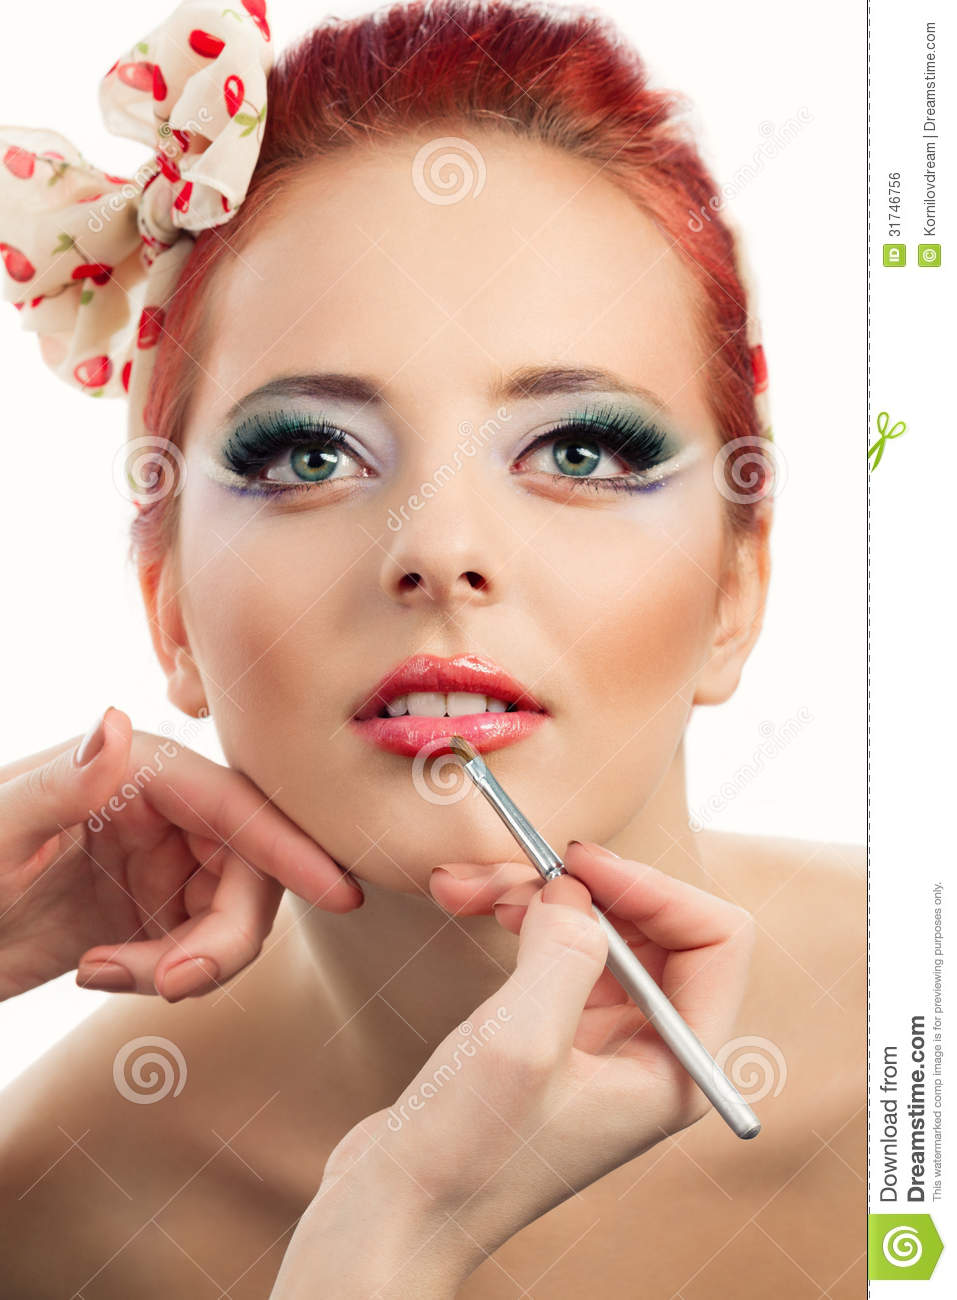 Professional Make Up Artist: Pinup Makeup Stock Photo. Image Of Female, Hand, Brush